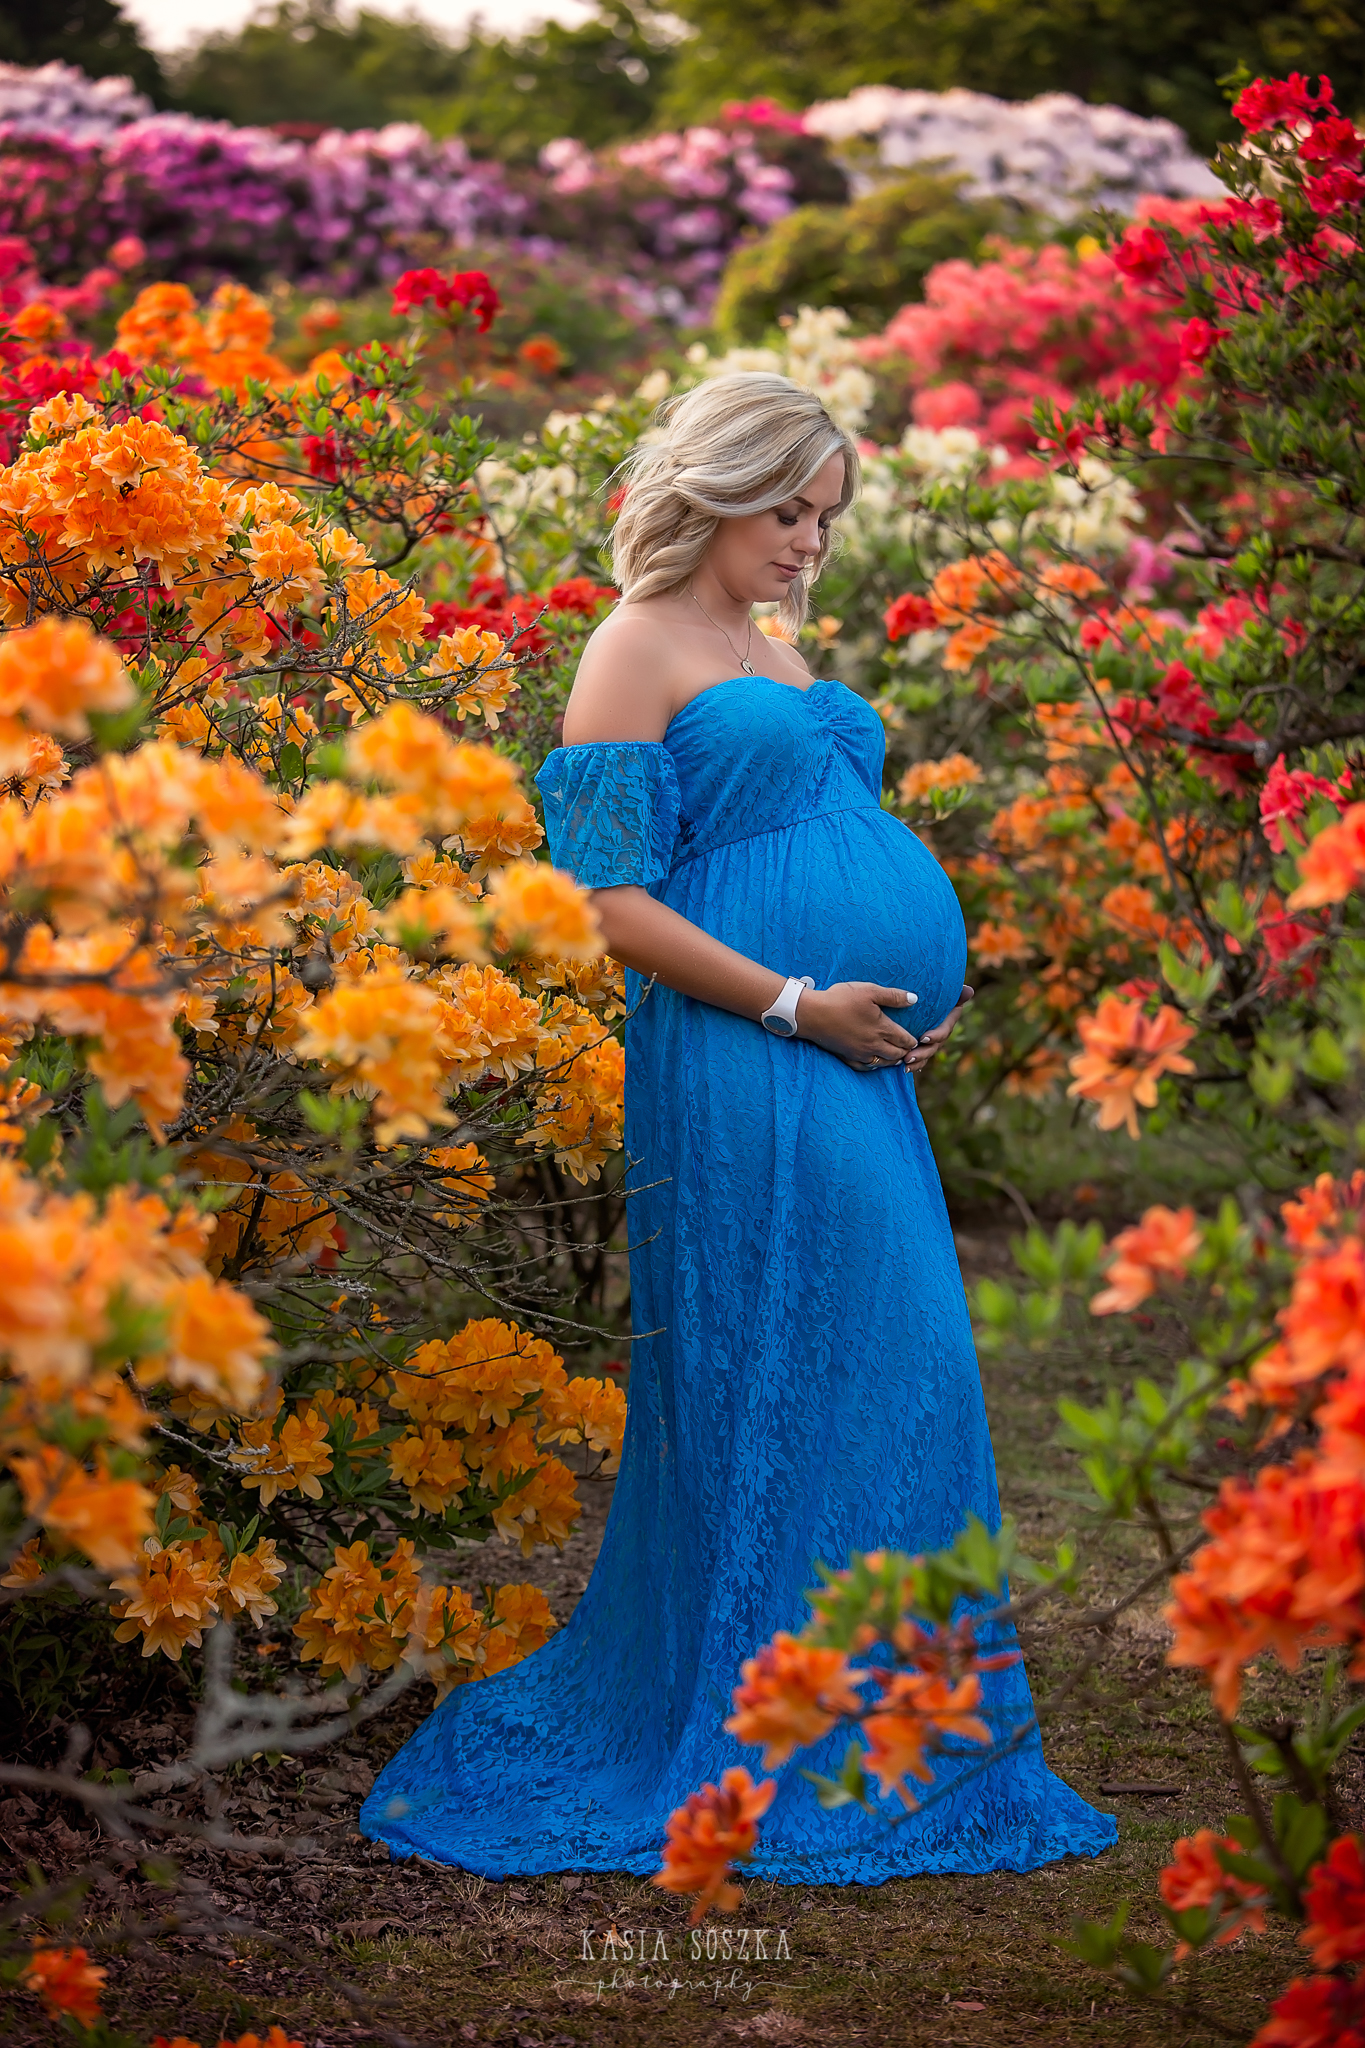 Maternity photography Harrogate: beautiful blond pregnant woman in a long blue dress surrounded by colourful rhododendron flowers.